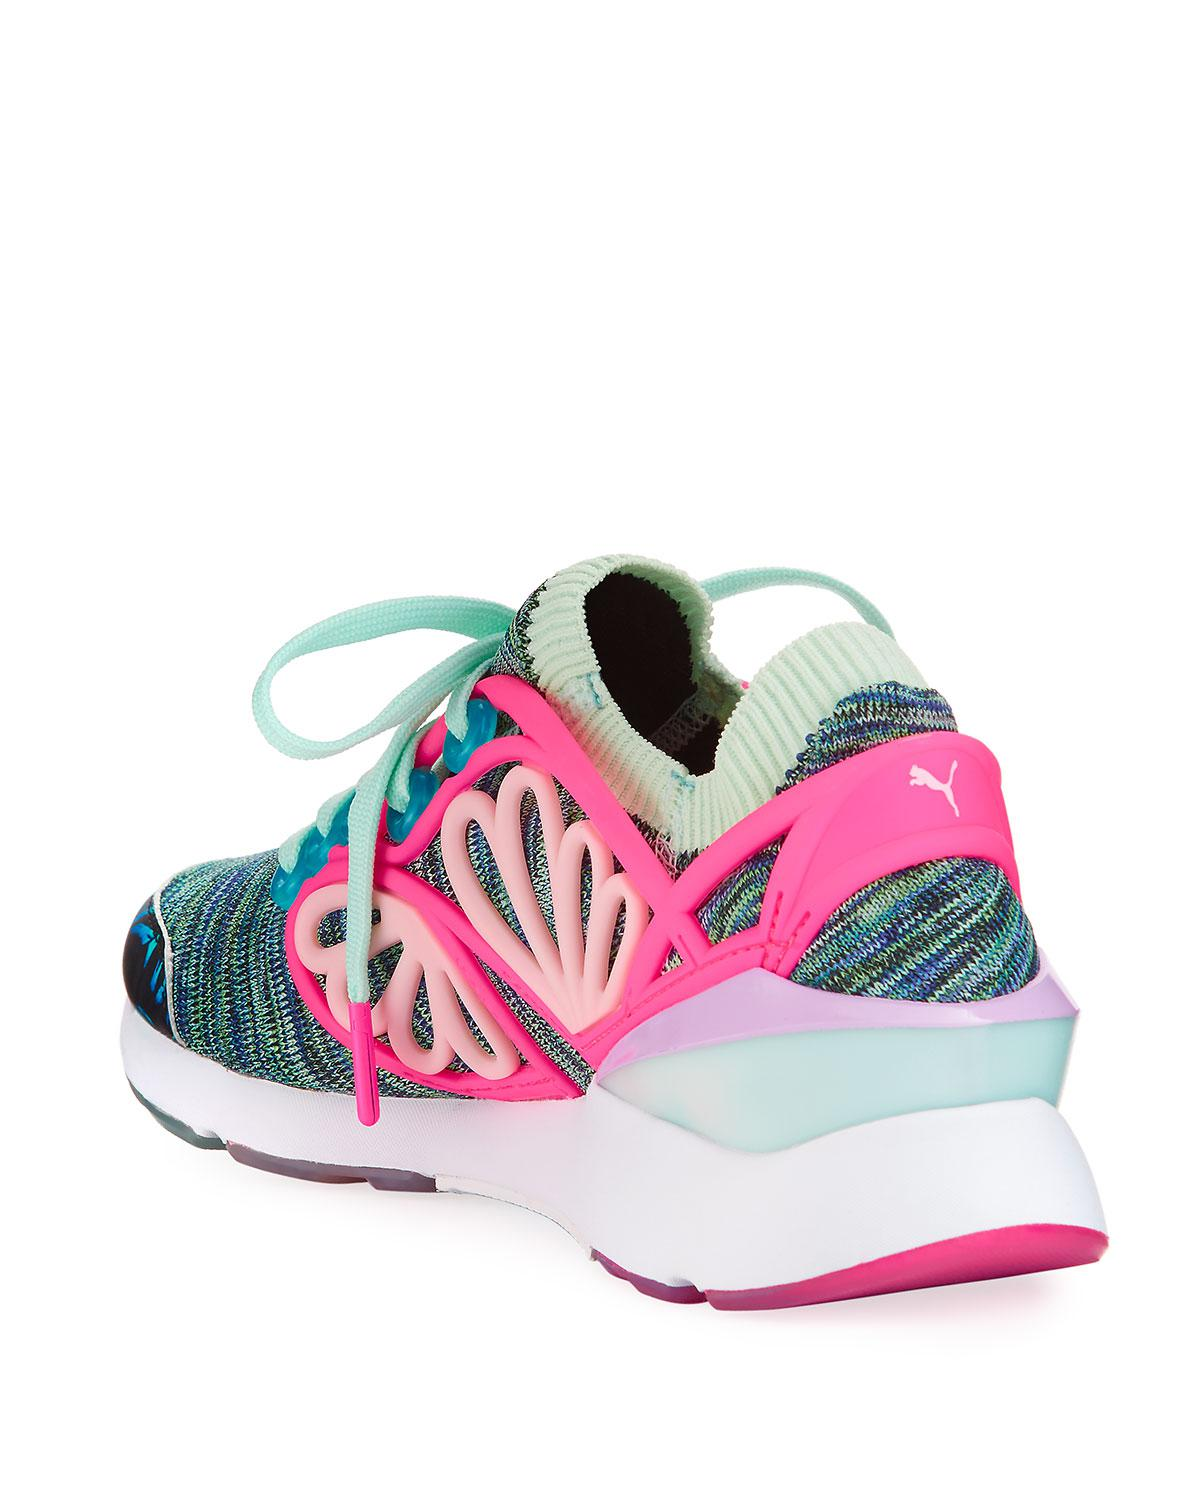 ... reduced lyst puma x sophia webster pearl cage graphic knit trainer  sneaker eb448 9f1d1 af3ba2d1d